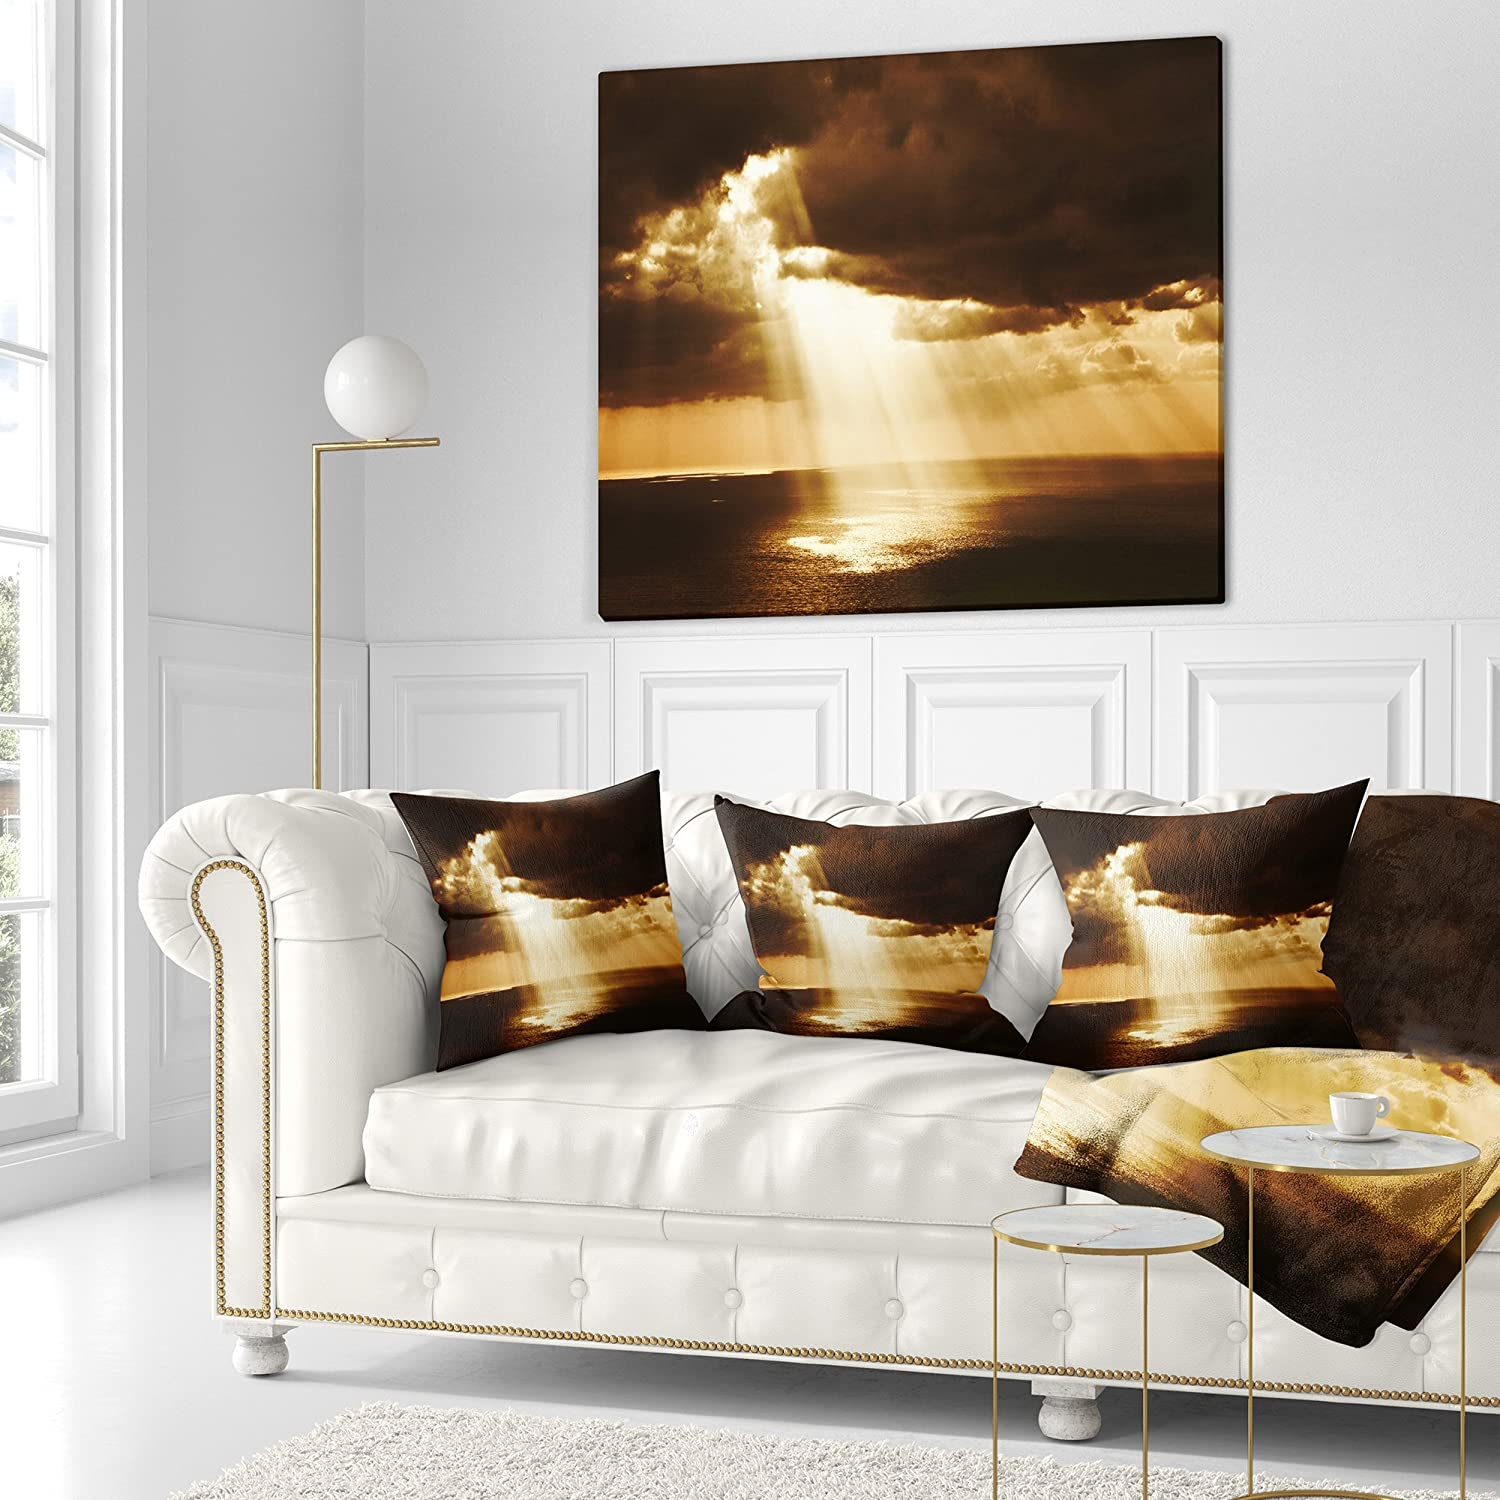 Designart CU14761-18-18 Dramatic Sunset with Sunrays Landscape Printed Cushion Cover for Living Room x 18 in in Sofa Throw Pillow 18 in